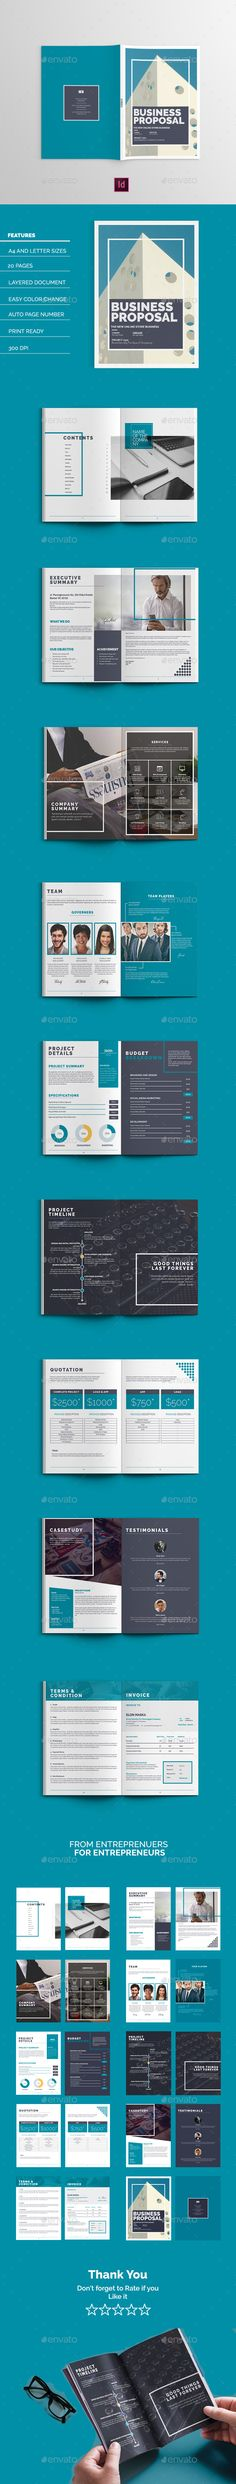 The Business Proposal Design Template - Proposals & Invoices Stationery Template InDesign INDD. Download here: http://graphicriver.net/item/the-business-proposal/16866926?ref=yinkira